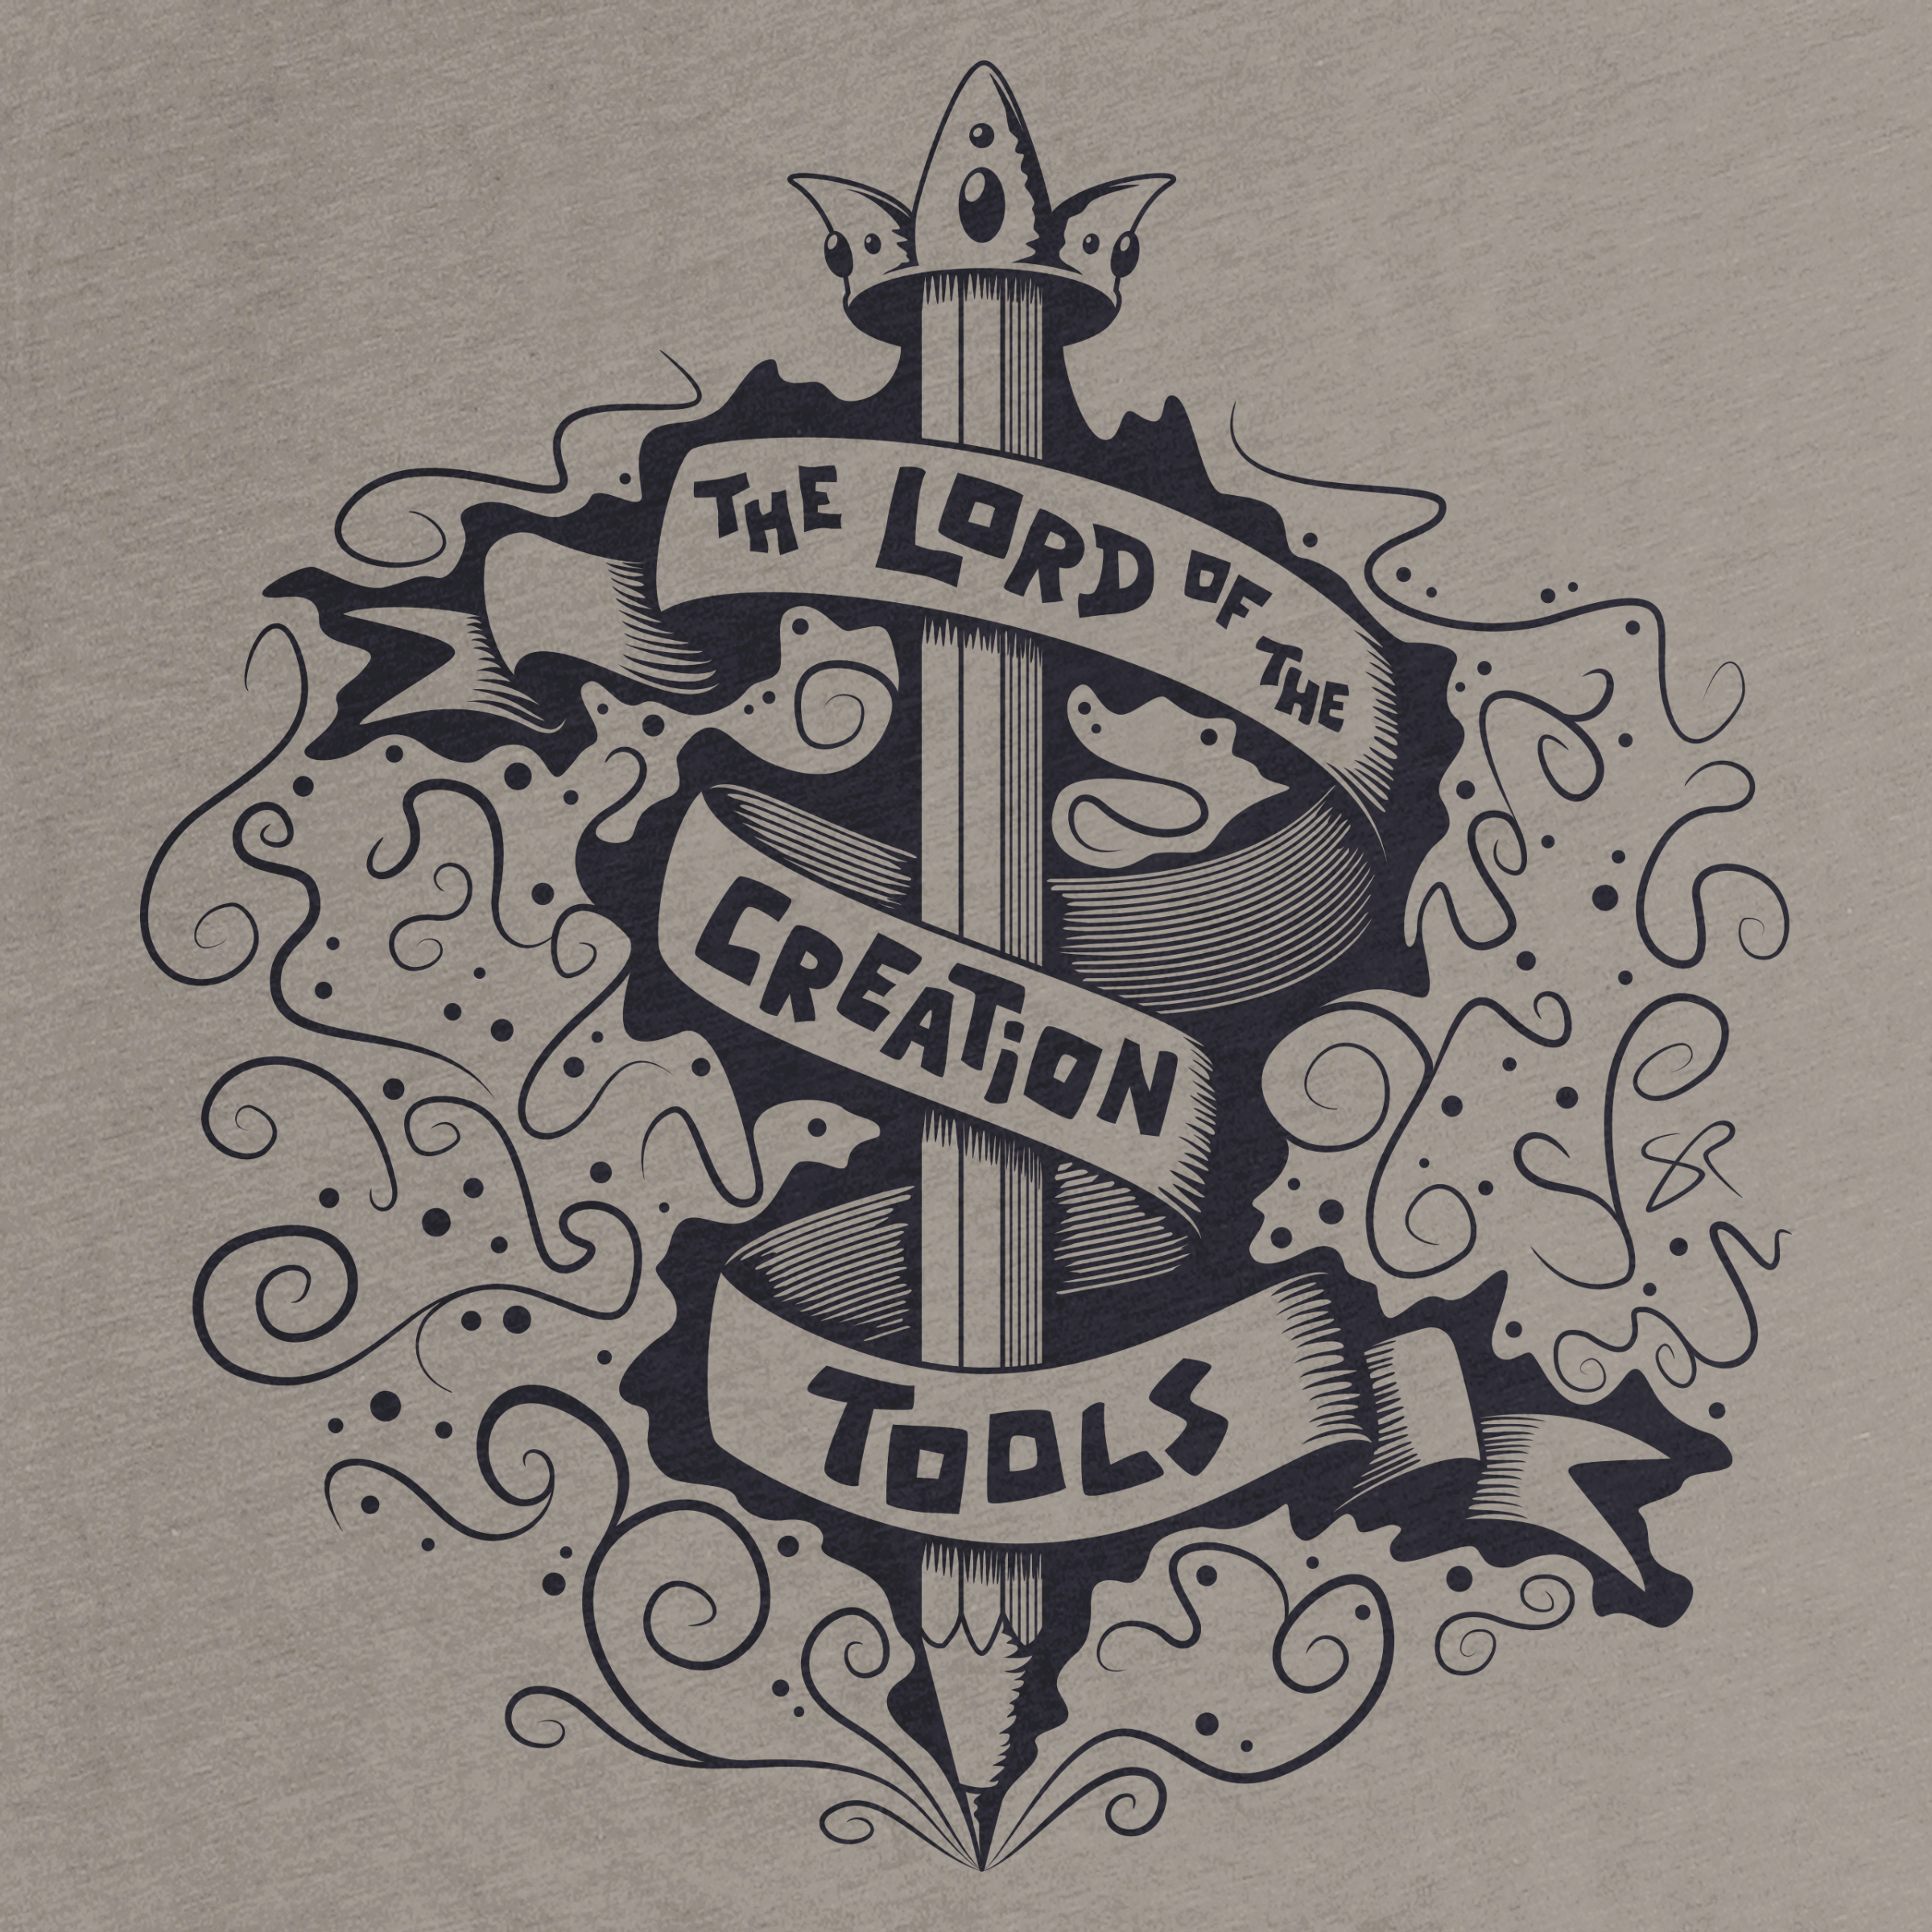 The Lord of the Creation Tools